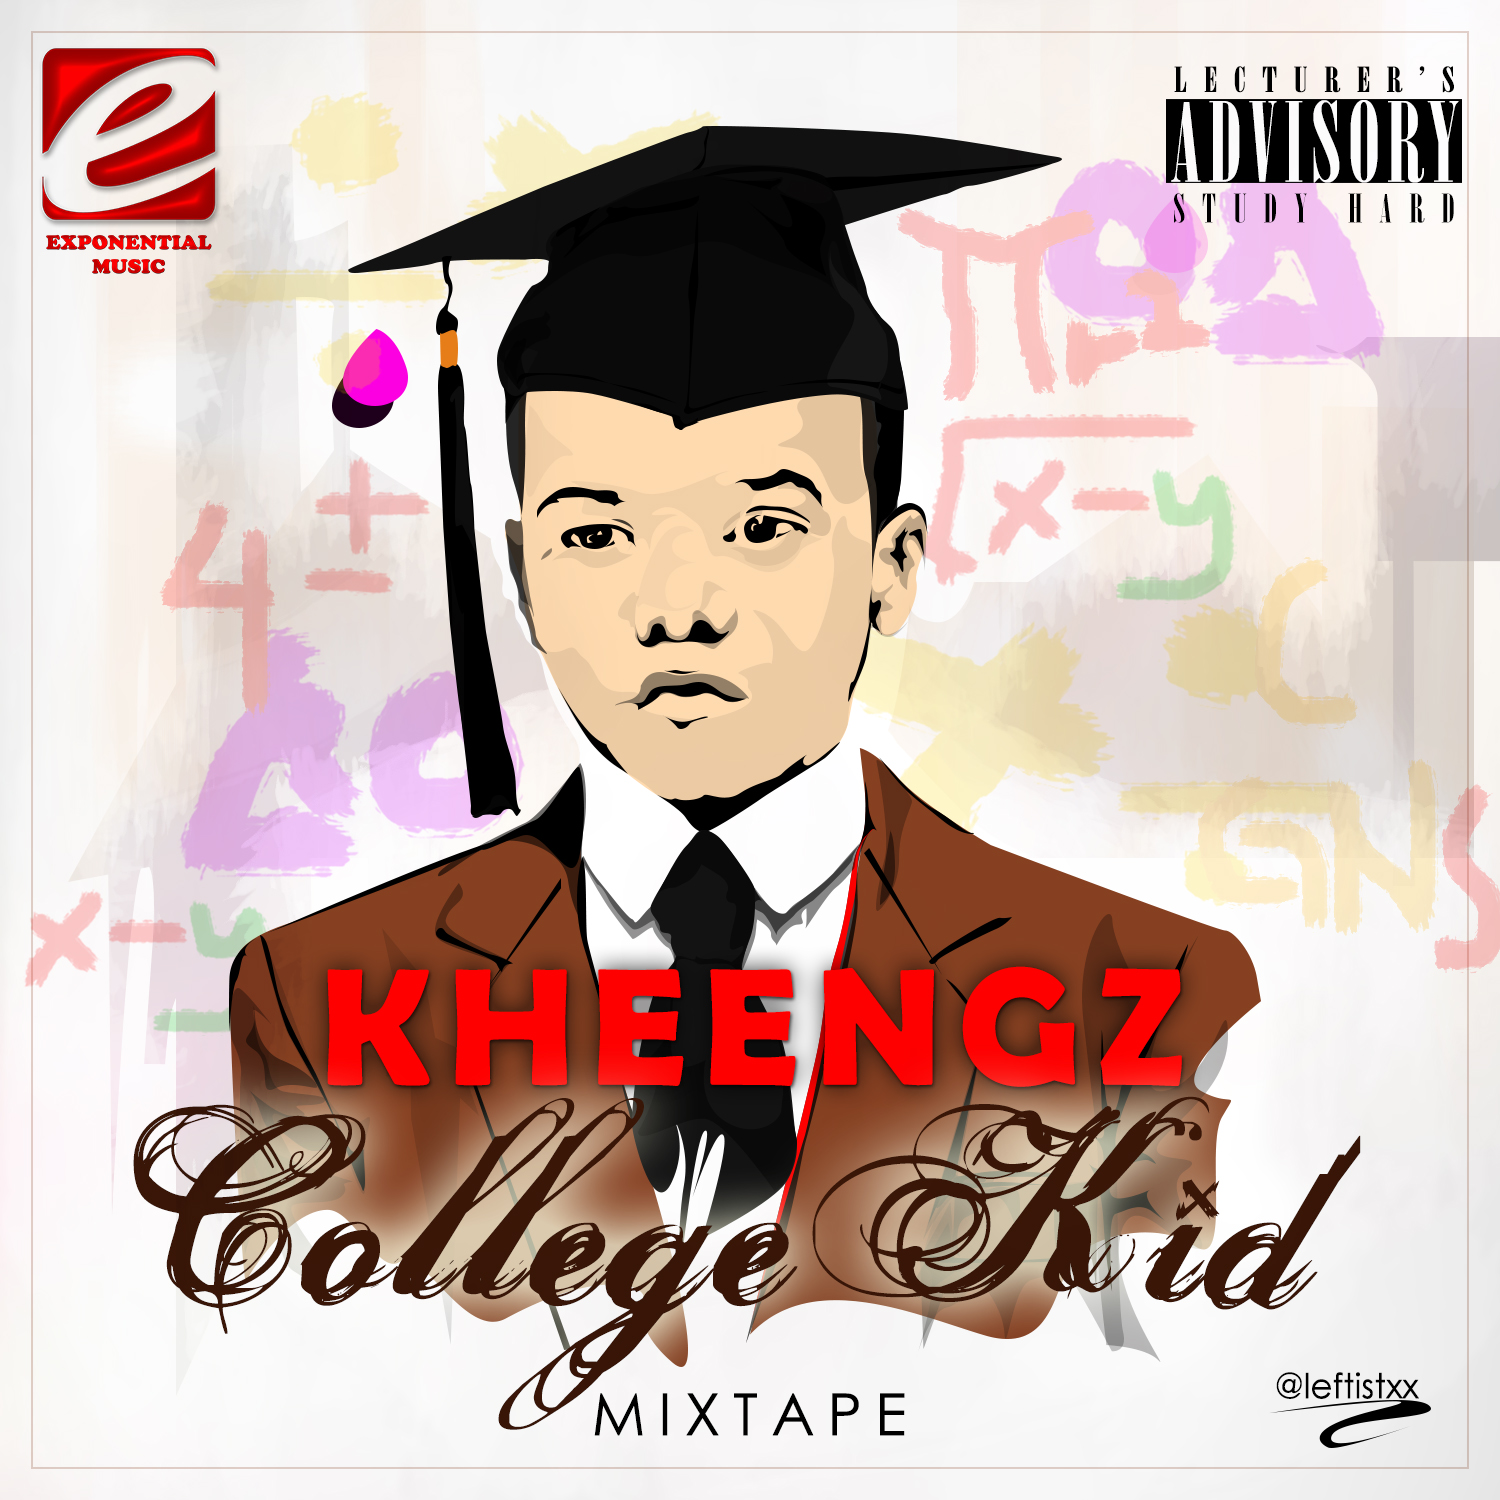 Kheengz College Kid Mixtape Art